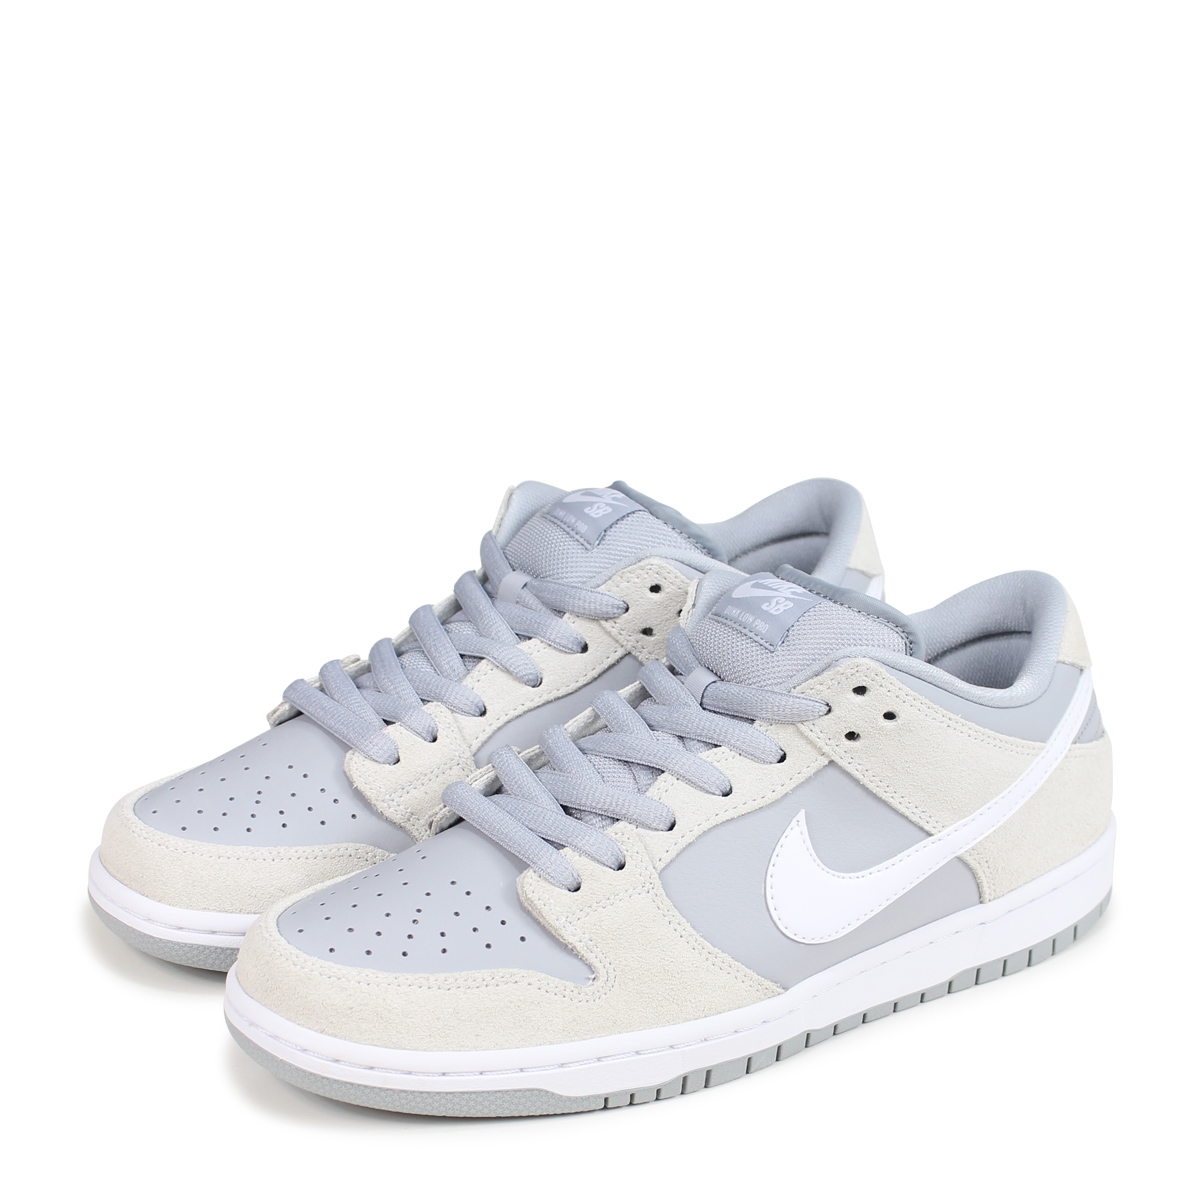 finest selection 35c11 dce25 NIKE SB DUNK LOW TRD Nike dunk sneakers men AR0778-110 white [load planned  Shinnyu load in reservation product 8/20 containing] [188]